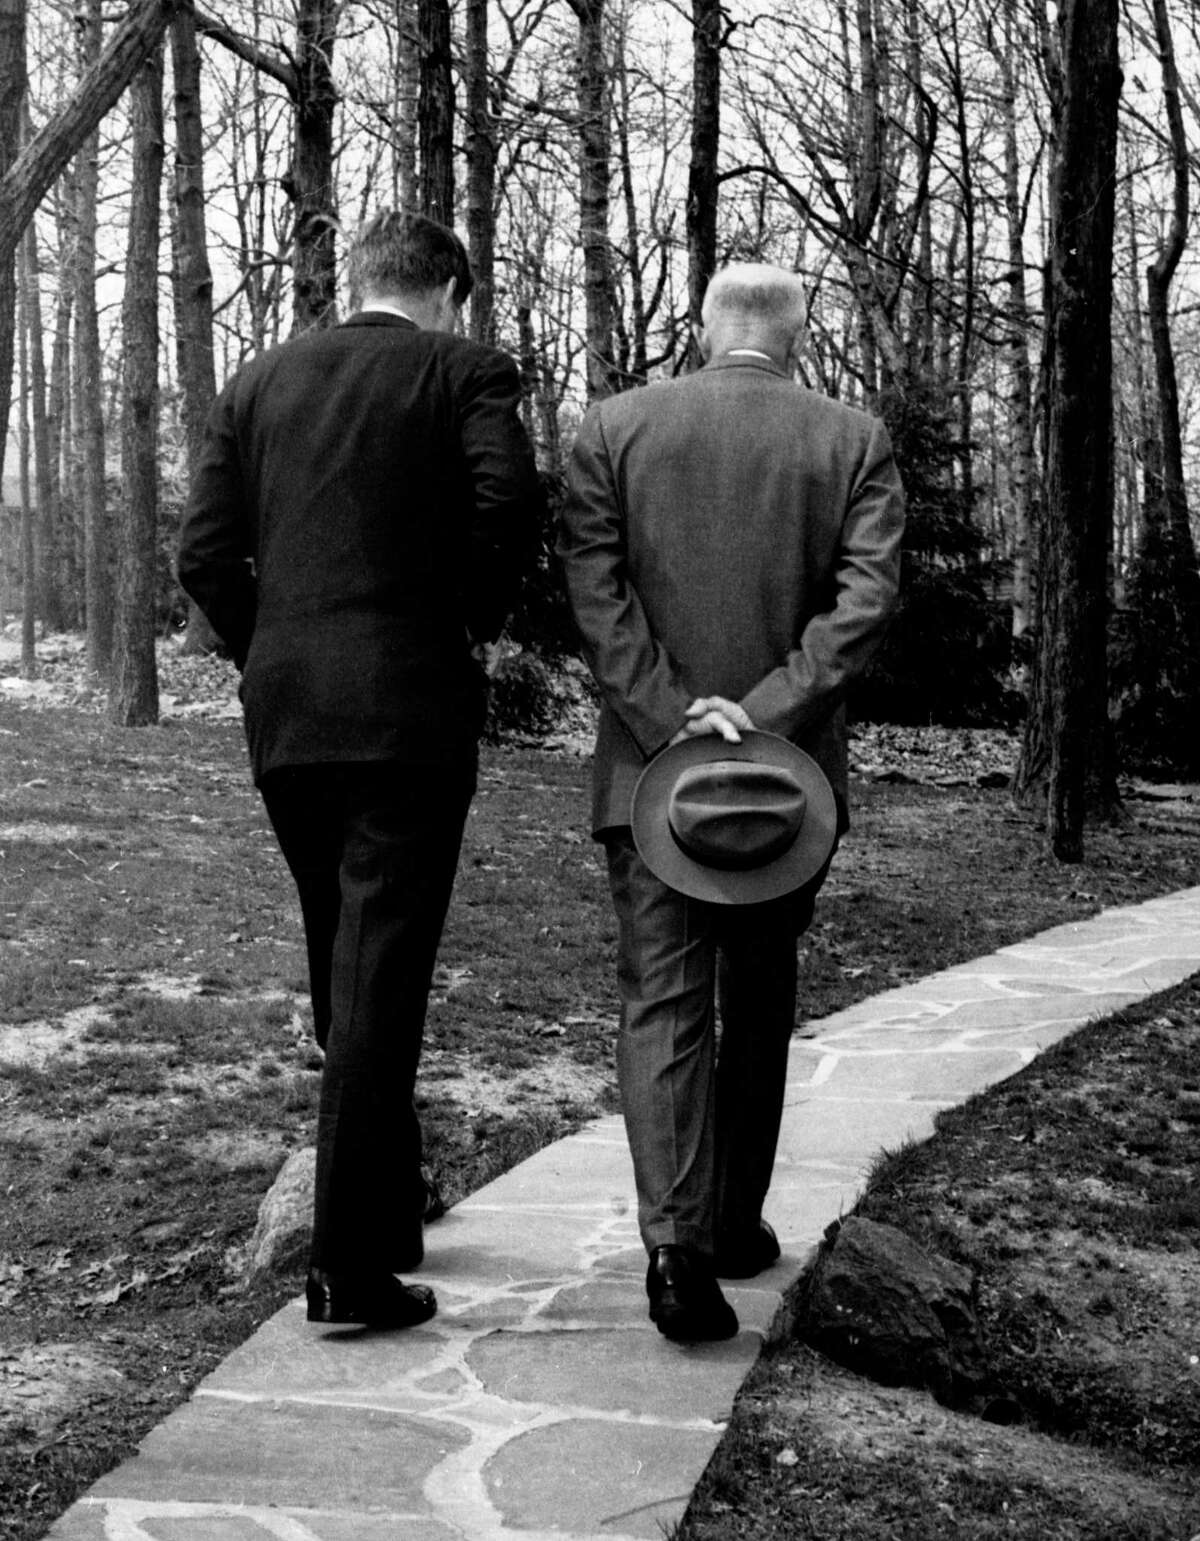 President John F. Kennedy, left, and former President Dwight D. Eisenhower with their heads bowed as they walk along a path at Camp David in Thurmond, Md.